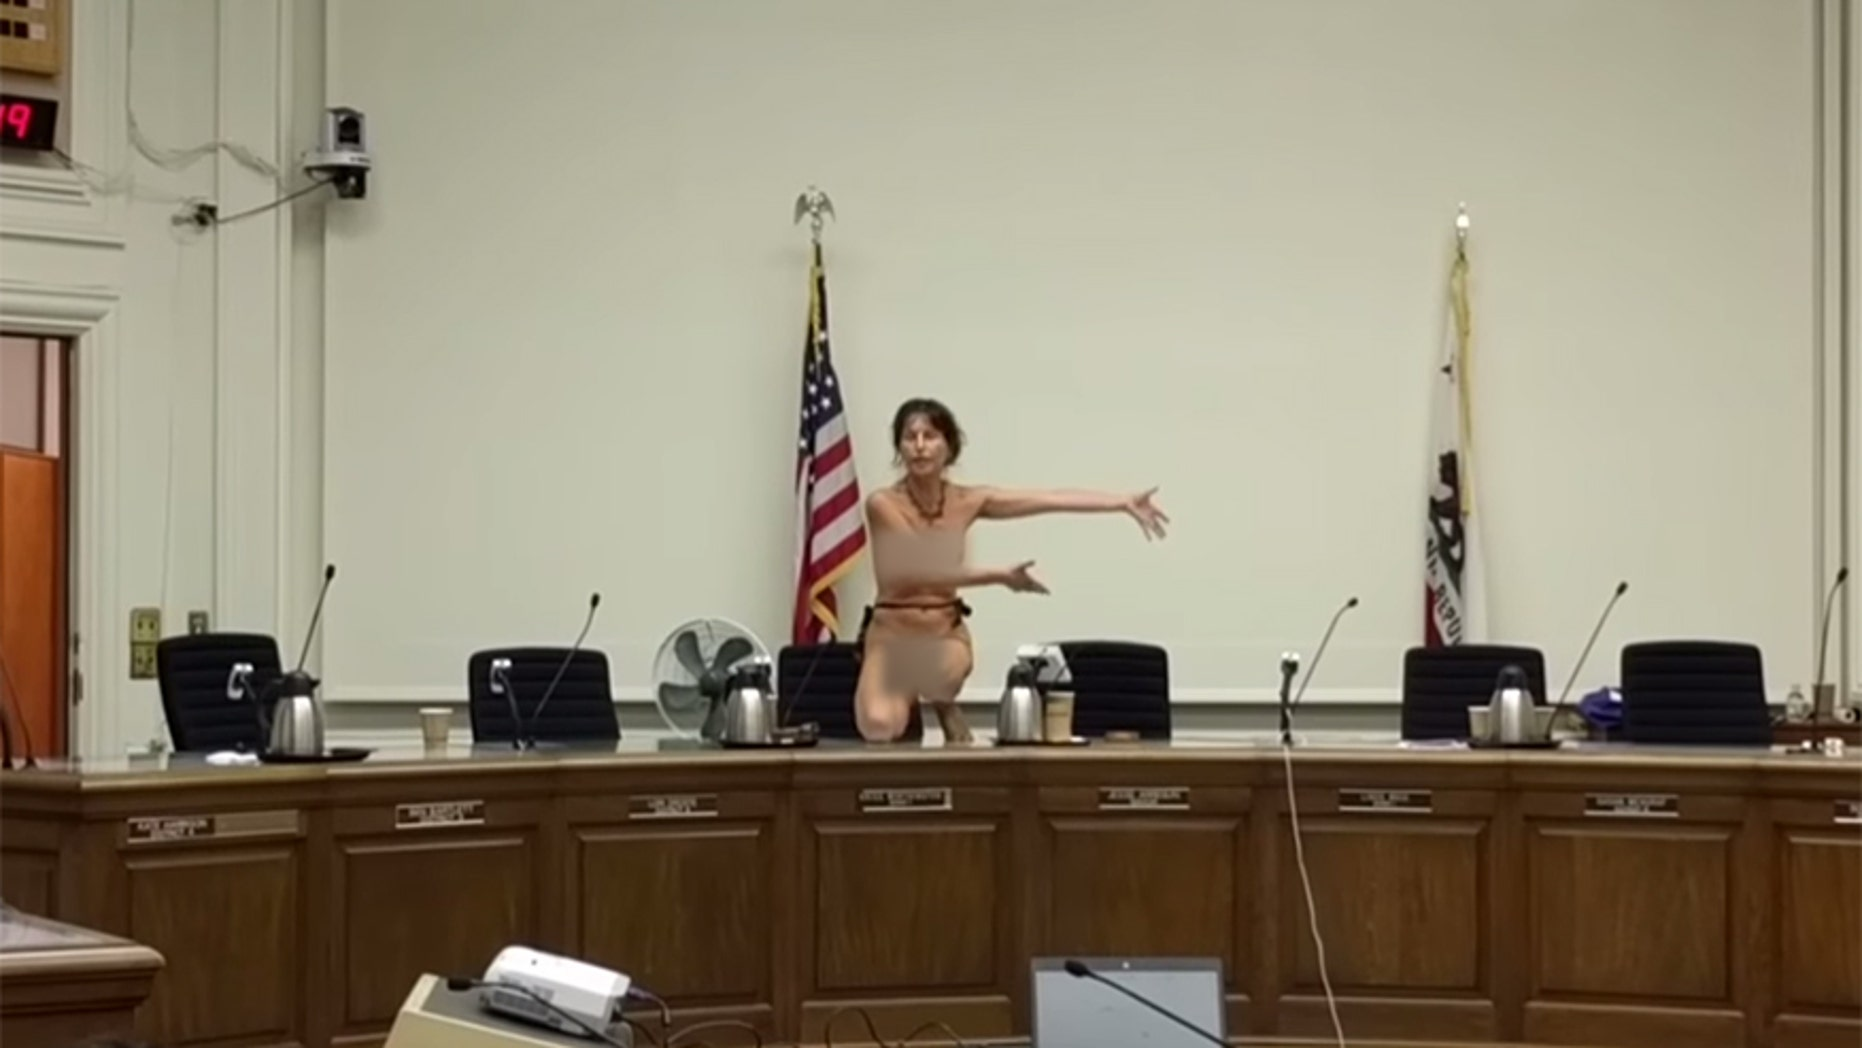 Activist Gypsy Taub climbs onto the dais after the Berkeley, Calif. City Council tabled a proposed ordinance that would allow women to go topless in public.